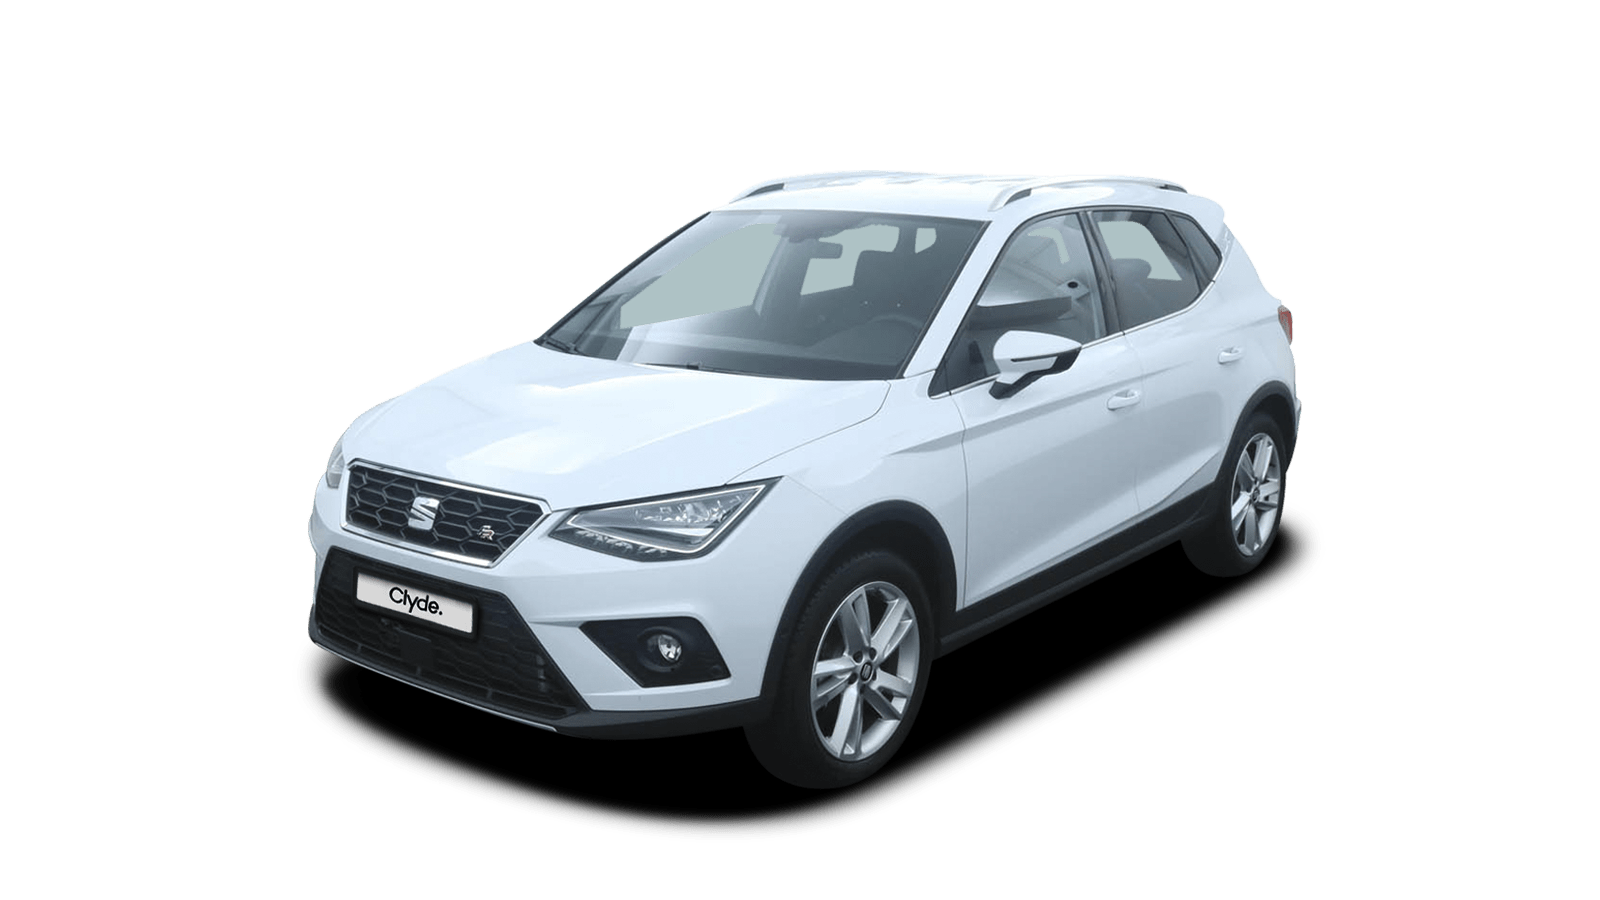 SEAT Arona White front - Clyde car subscription